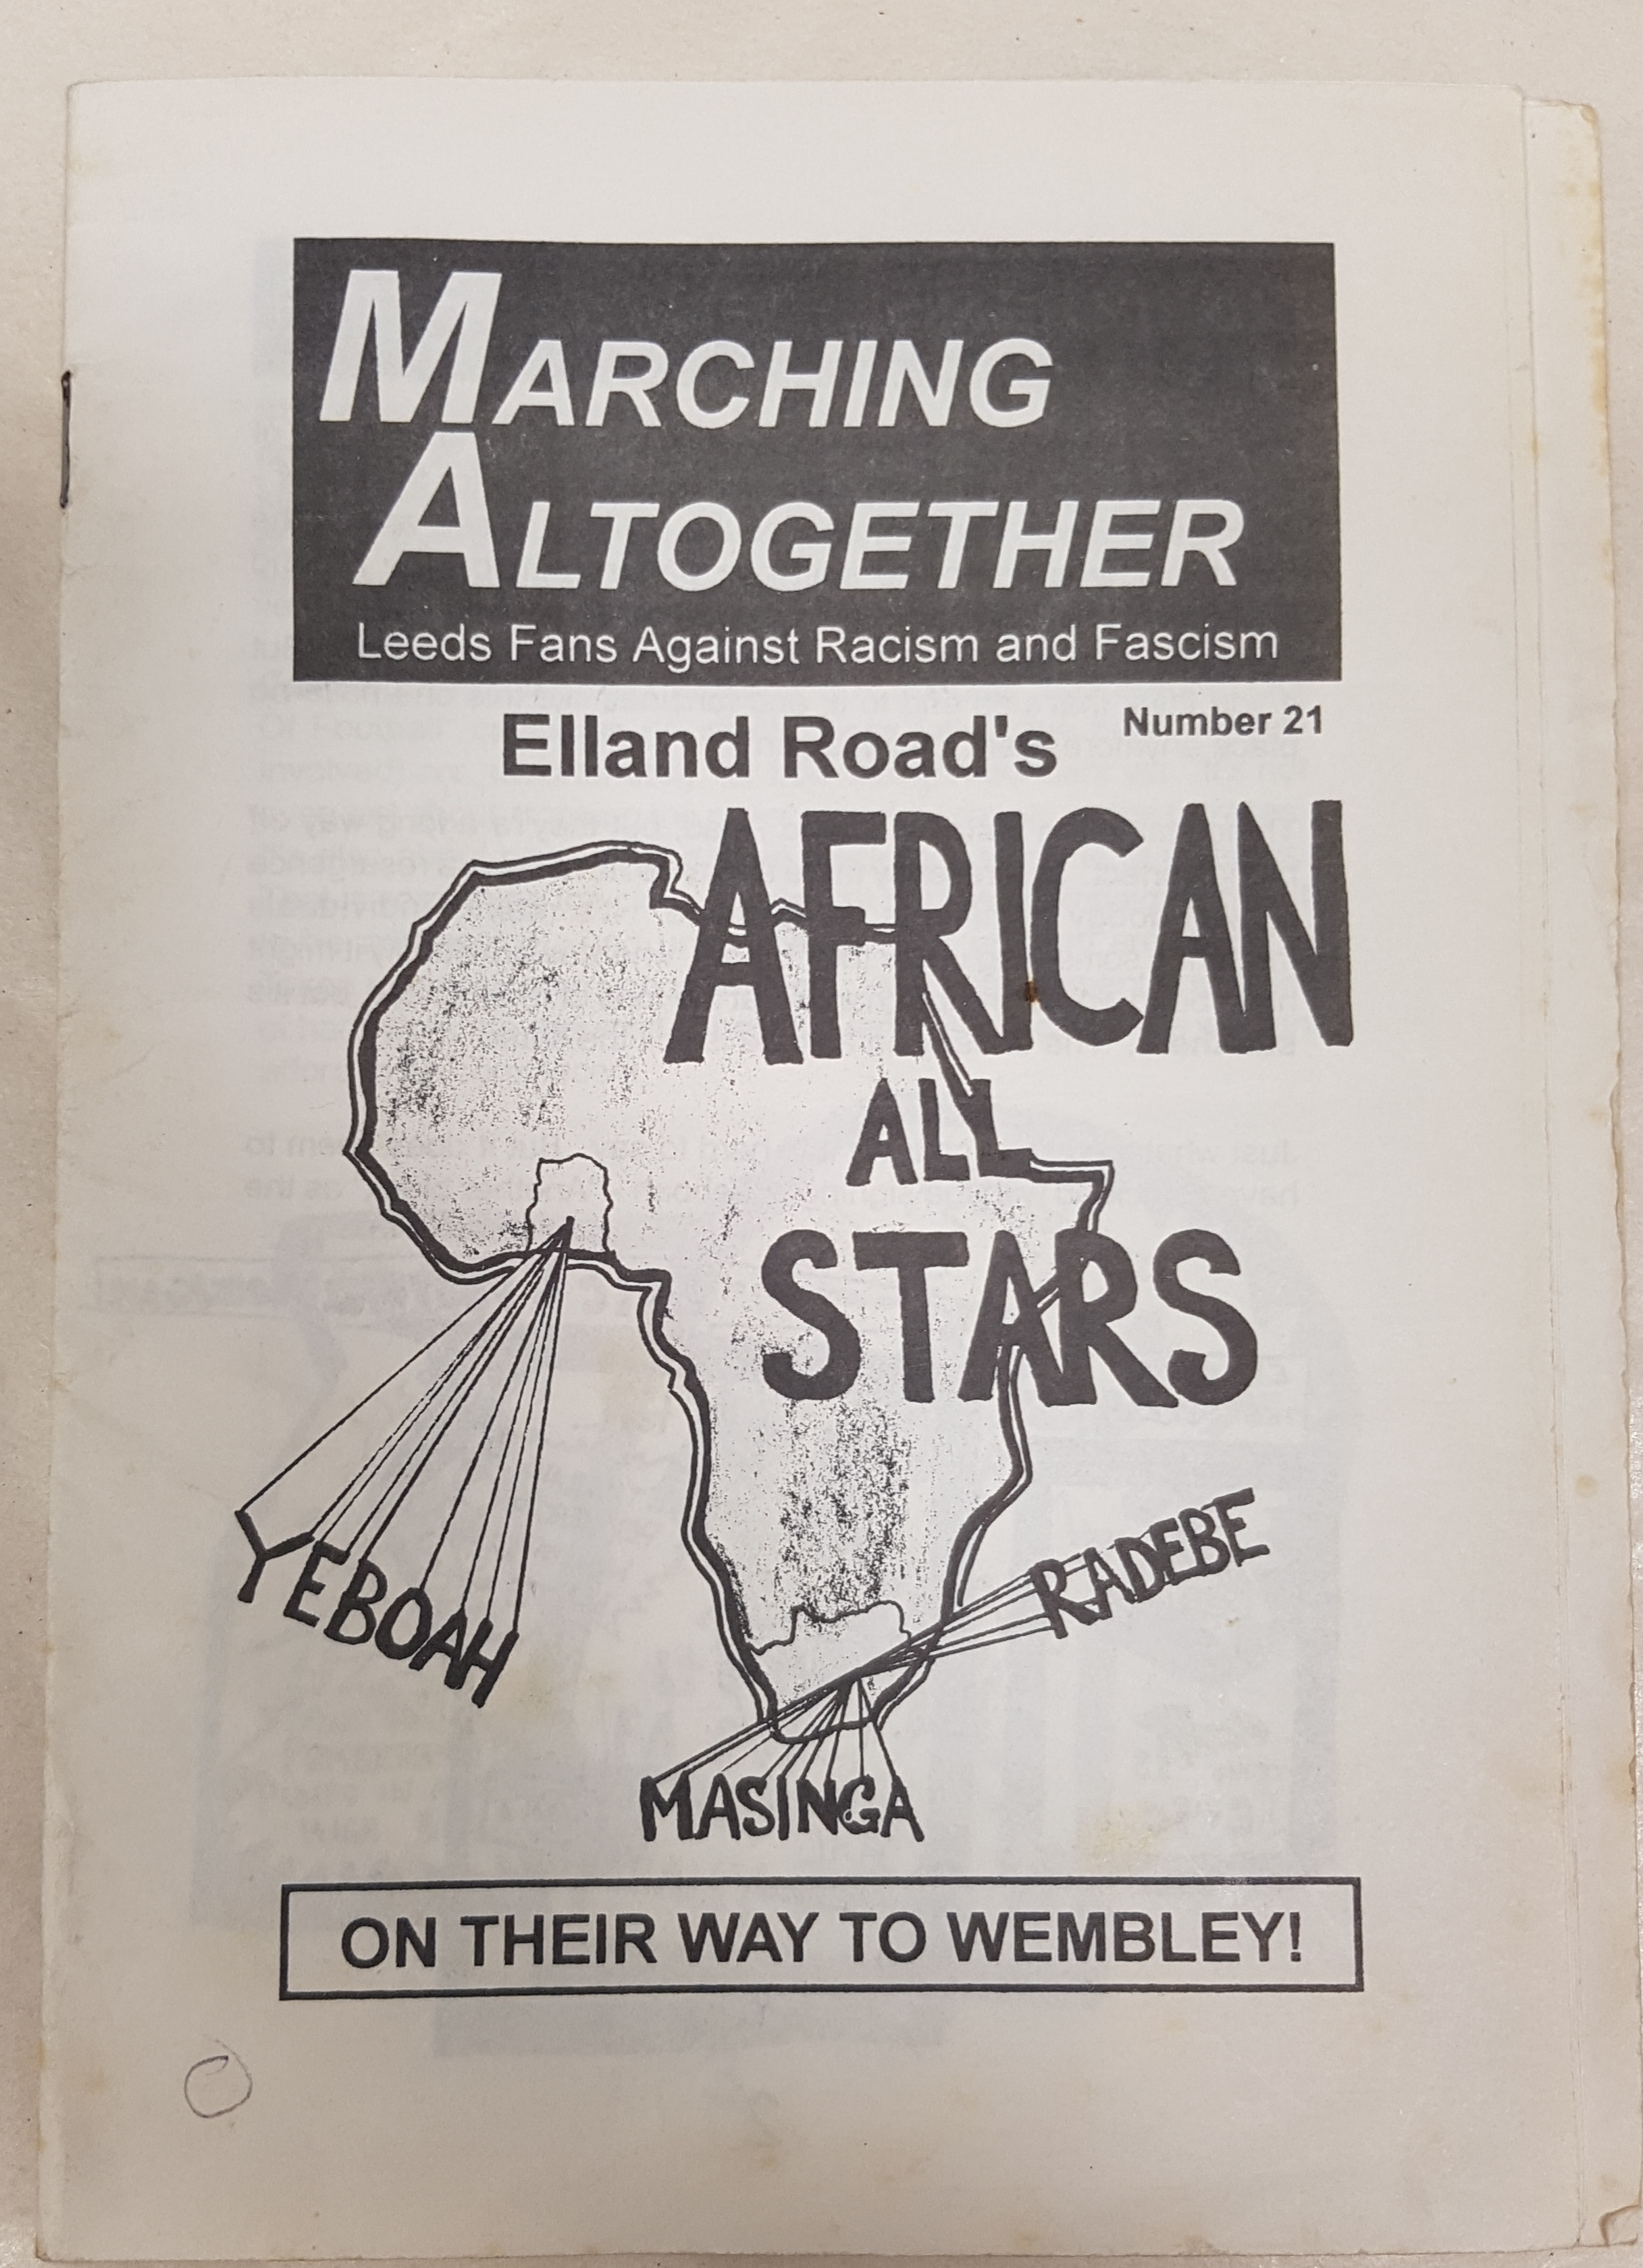 Photograph of the front of a fanzine with 'African All Stars' on the front, a map of Africa and the names of the Leeds players that come from there